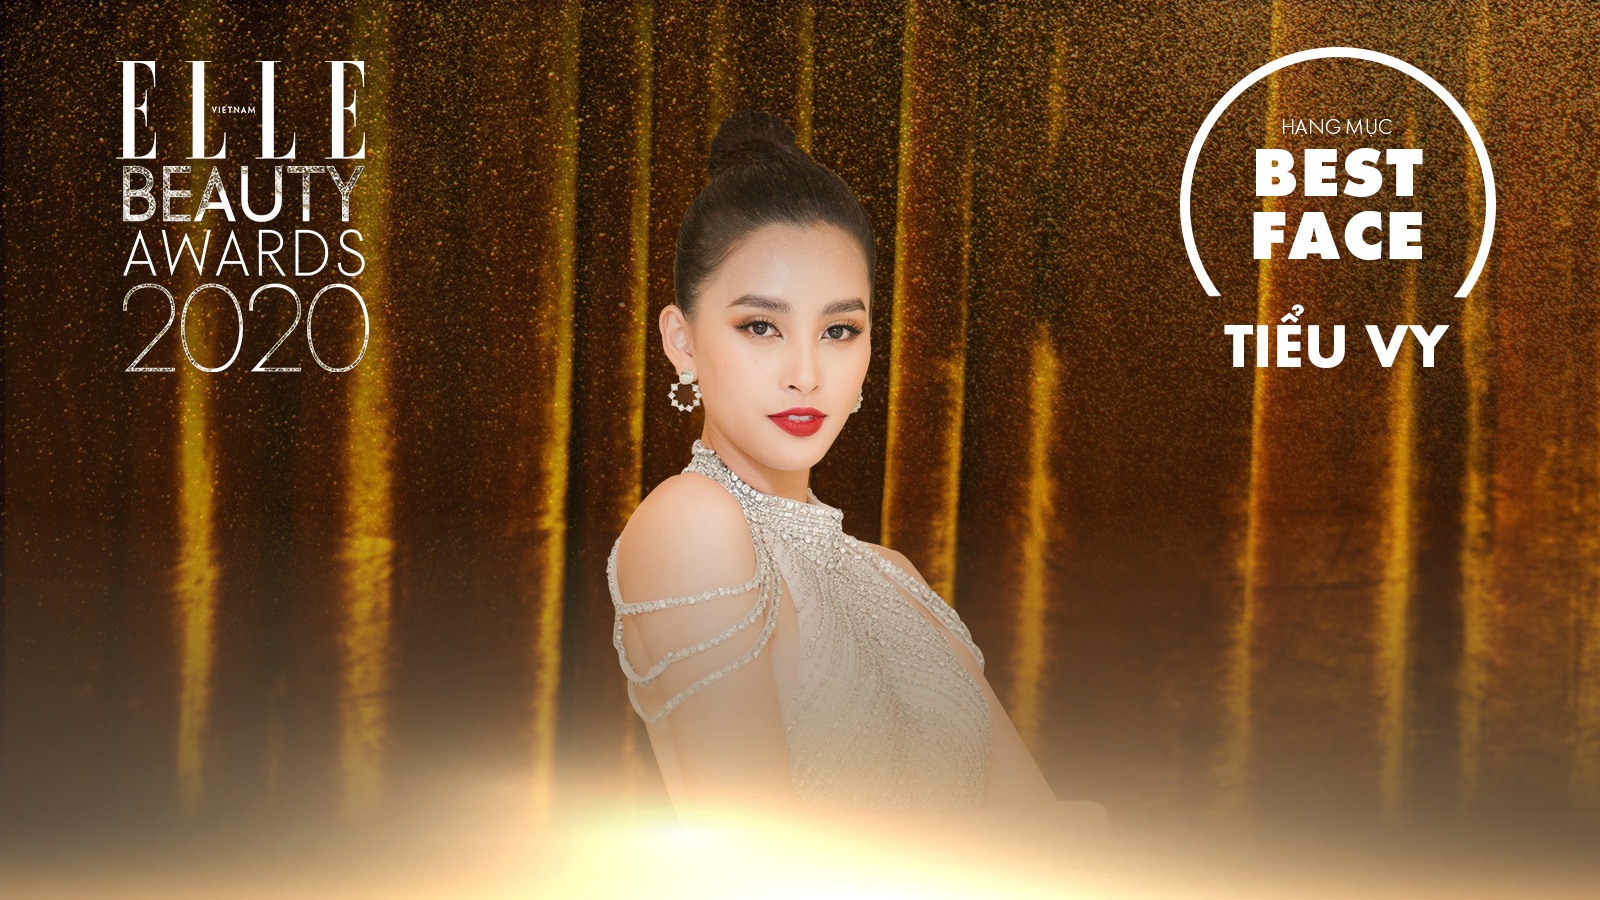 ELLE Beauty Awards 2020 - Best Face Tiểu Vy